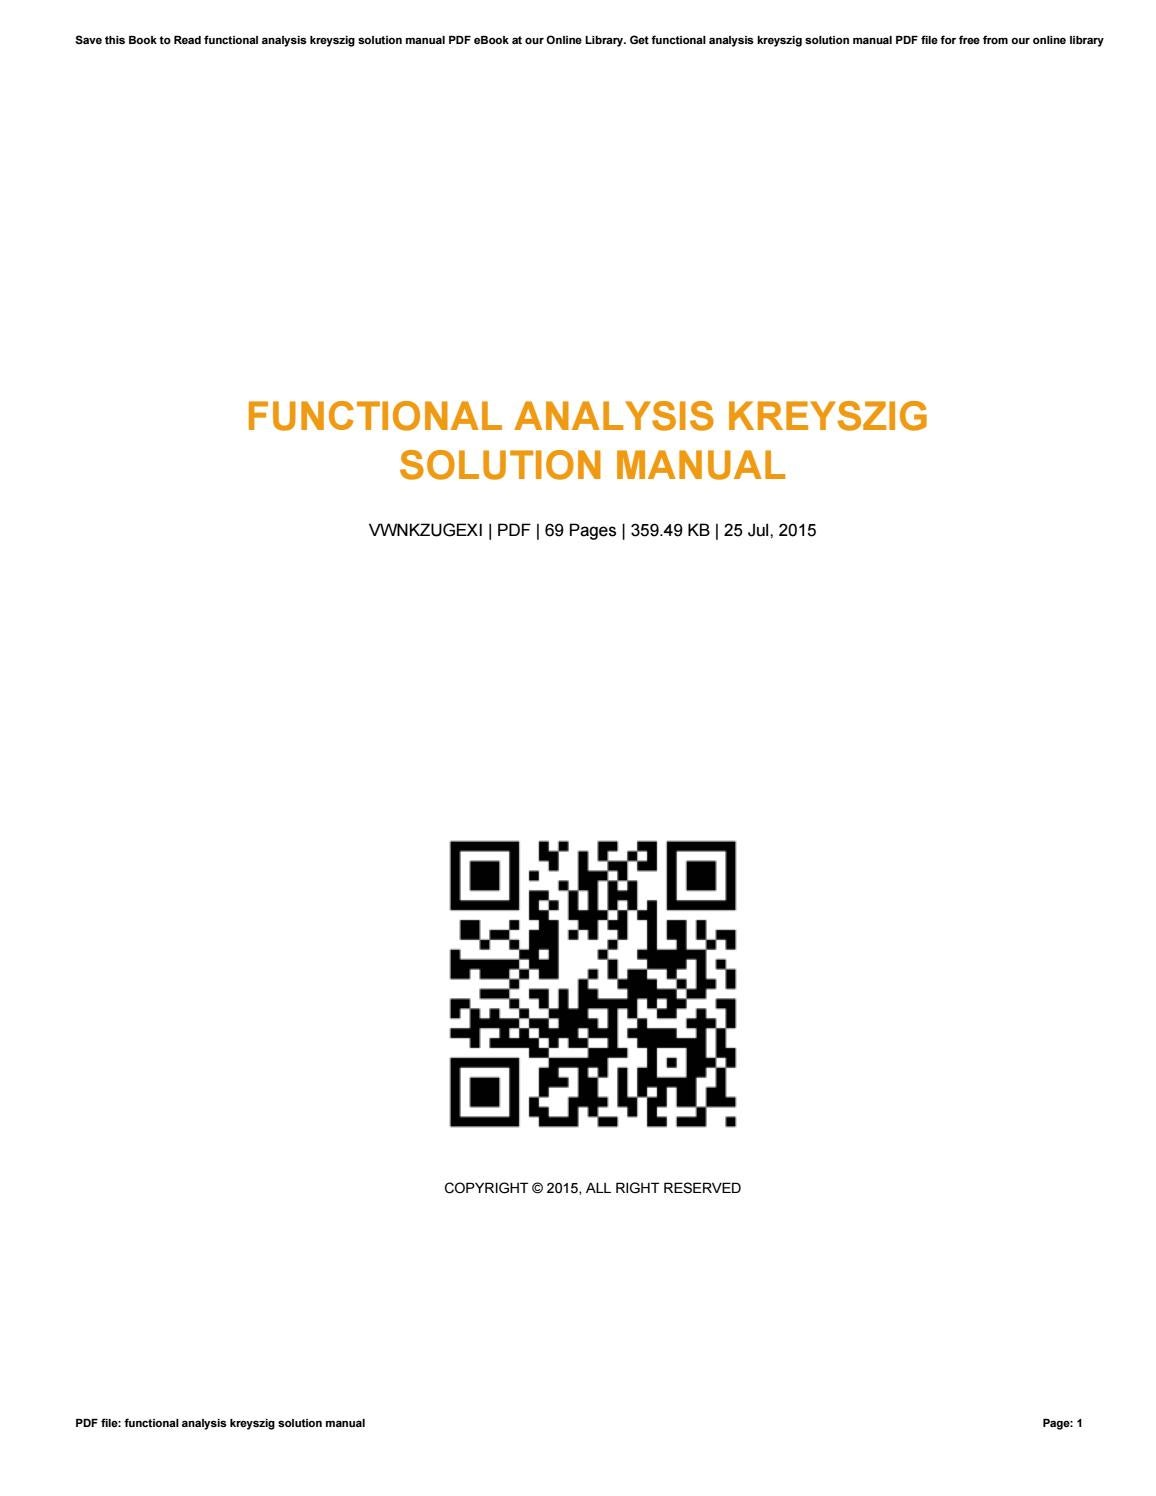 Functional analysis kreyszig solution manual by